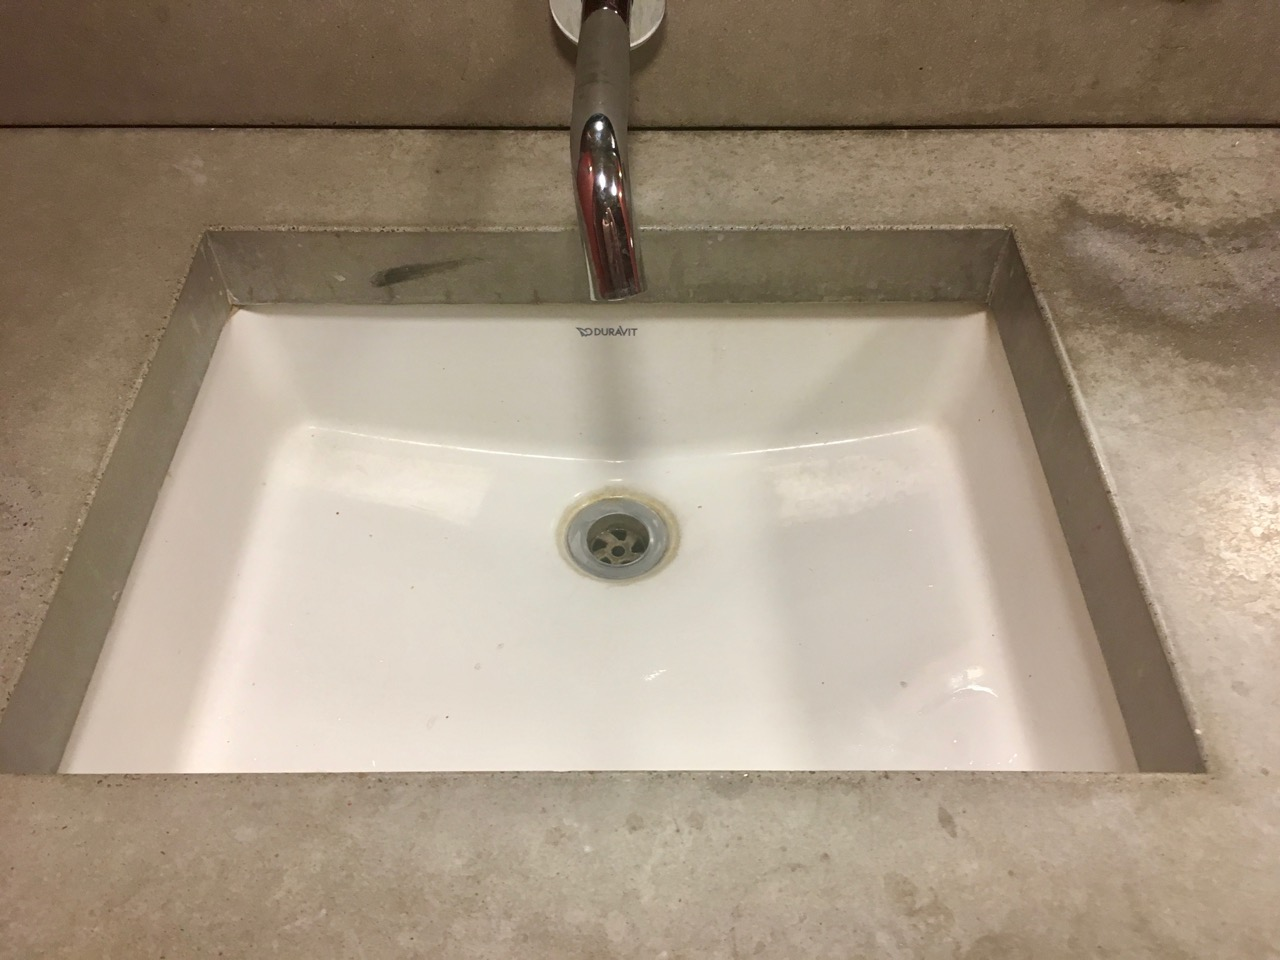 A closer look at the sinks